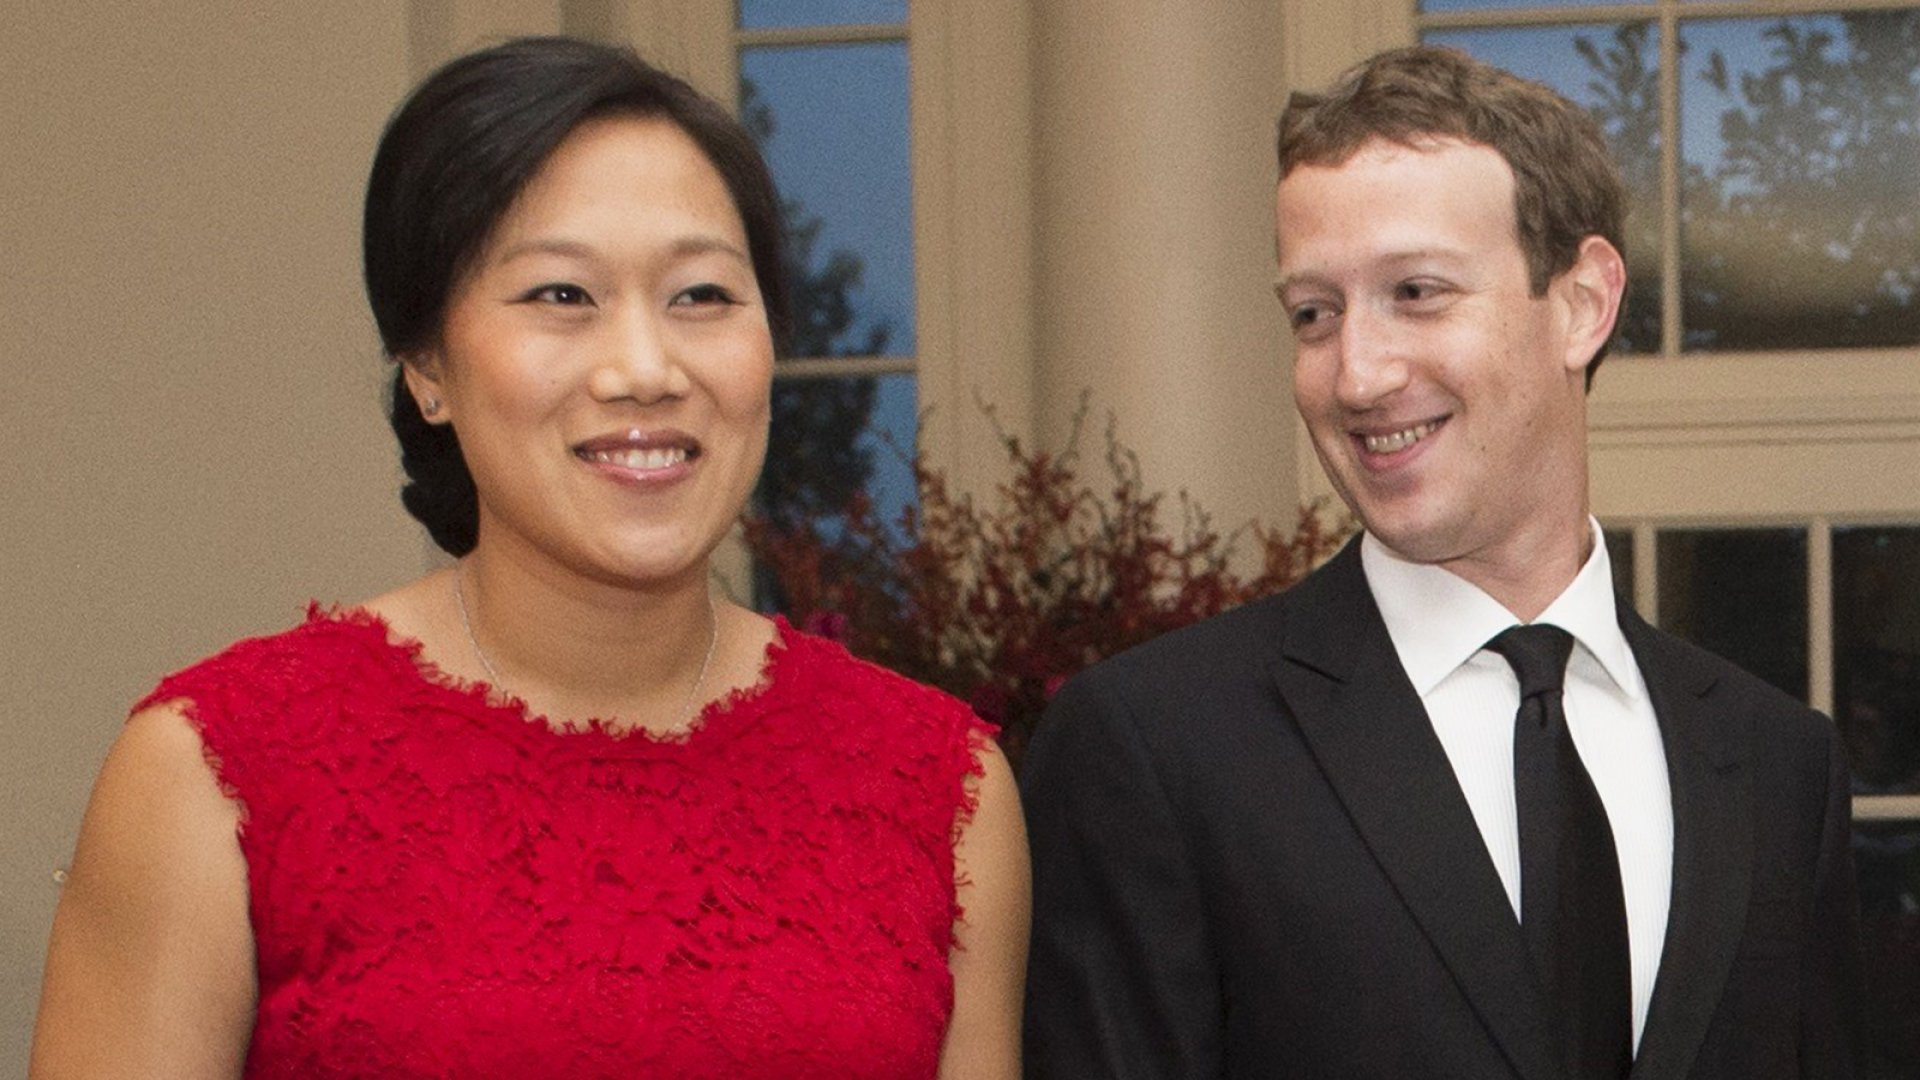 Priscilla Chan (left) and Facebook CEO Mark Zuckerberg.